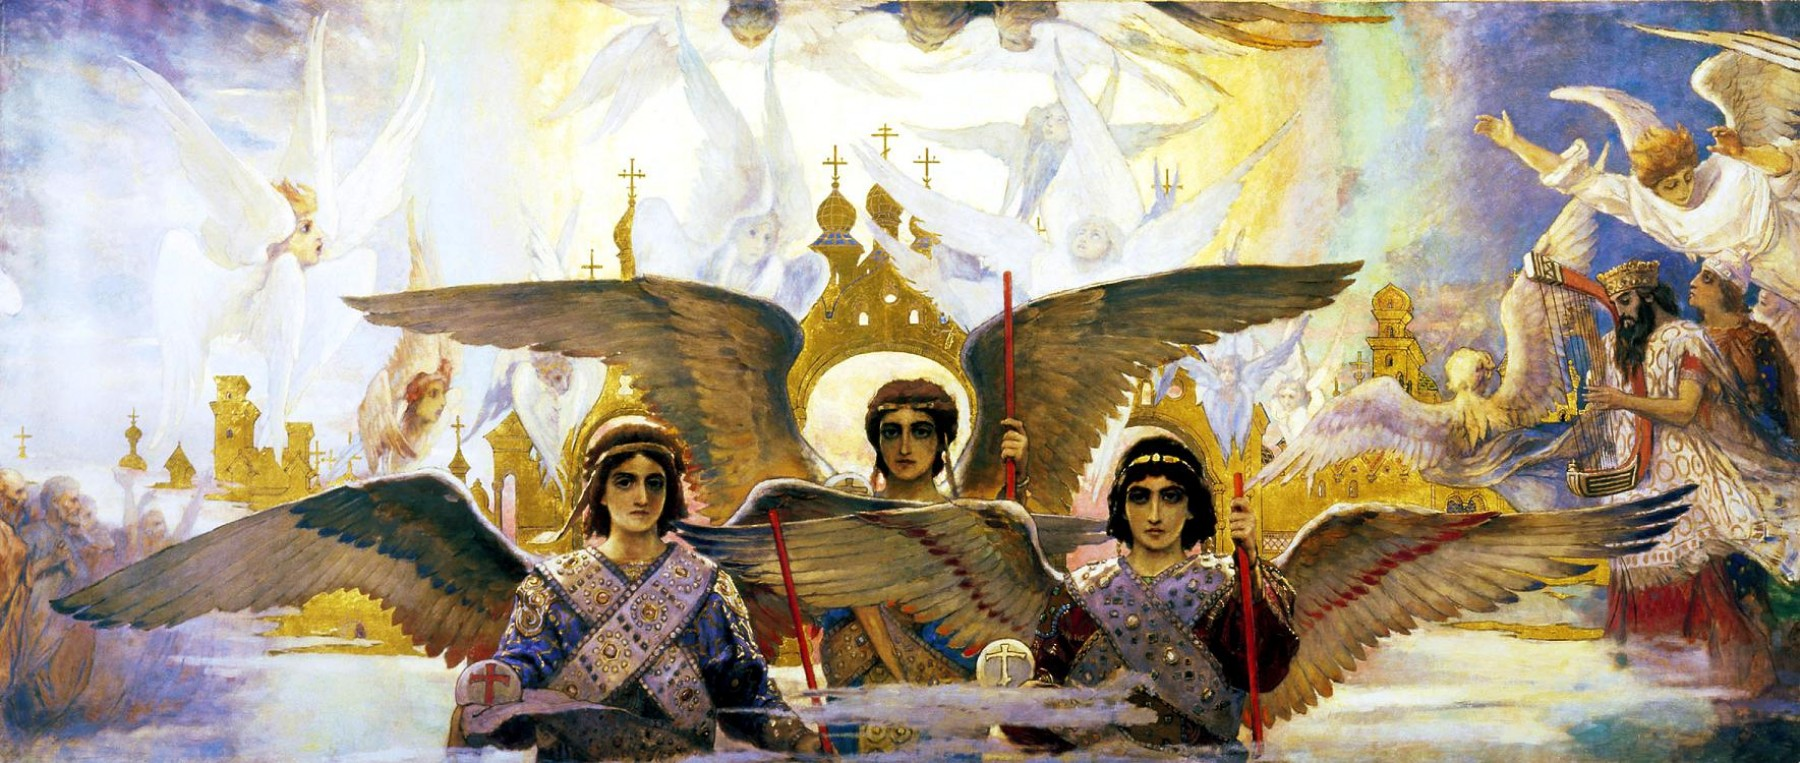 Viktor Vasnecov - Page 2 Viktor-vasnetsov-rejoice-in-the-lord-o-ye-righteous-panel-2-of-the-triptych-1896-e1277610342126